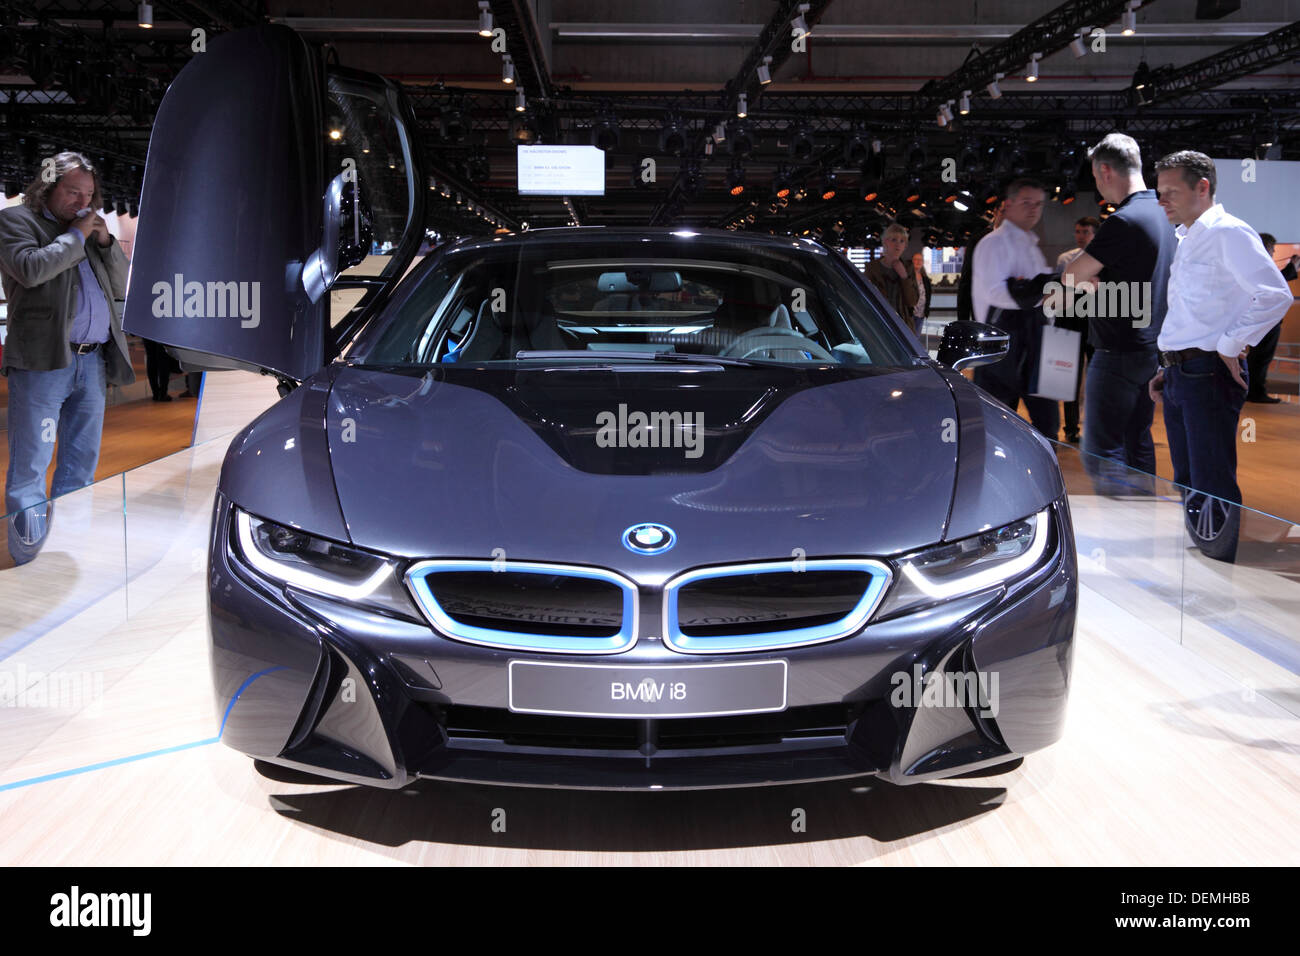 BMW I8 Electric Car At The 65th IAA In Frankfurt, Germany